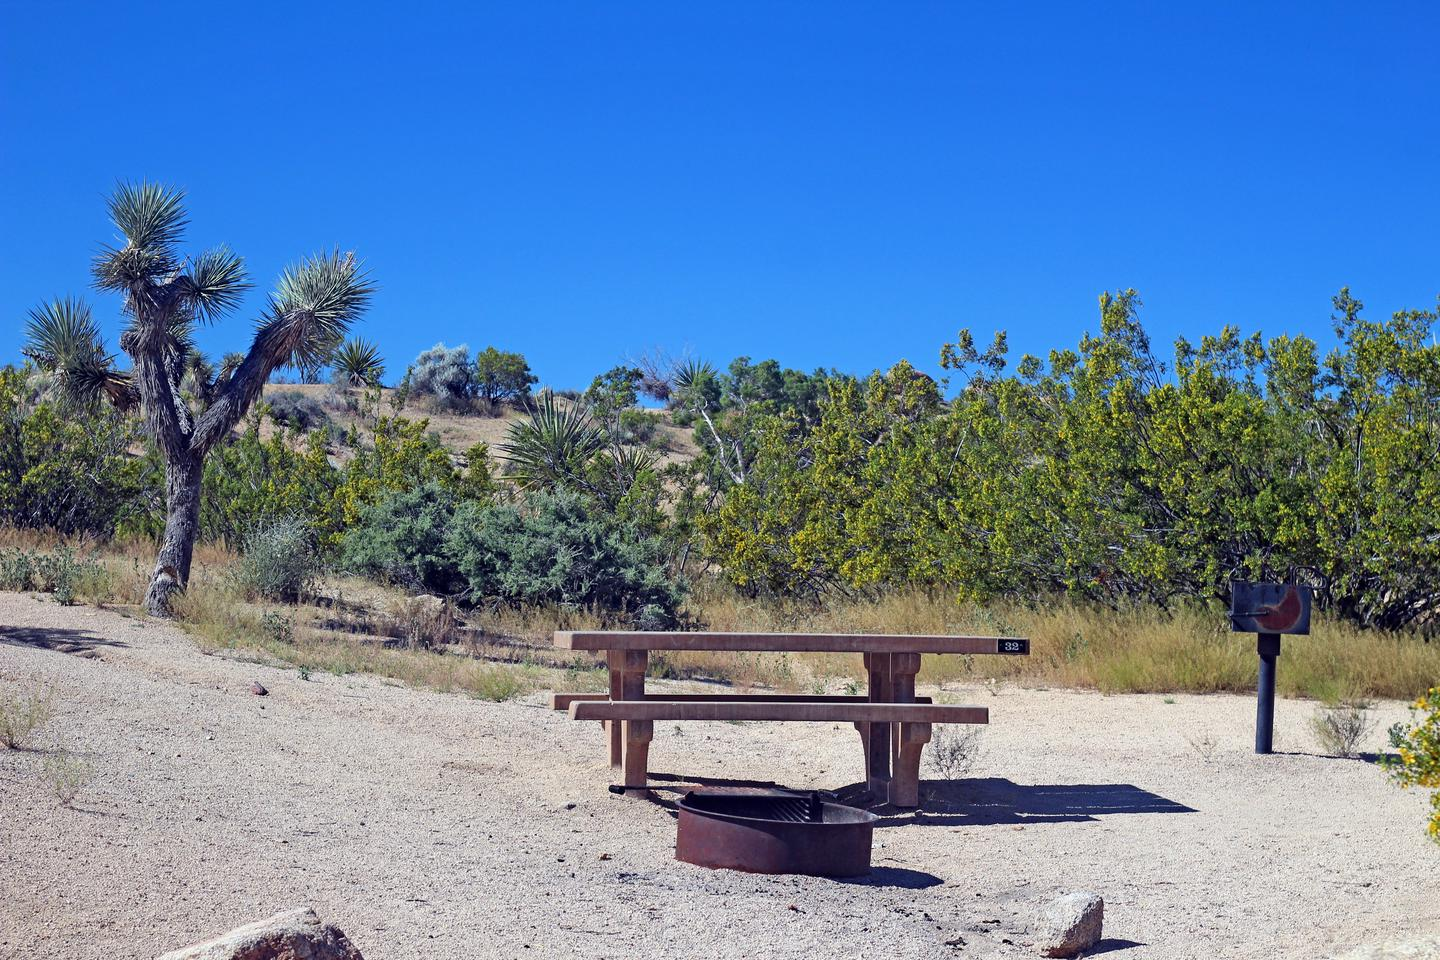 Campsite  with picnic table surrounded by boulders and green plants.Campsite